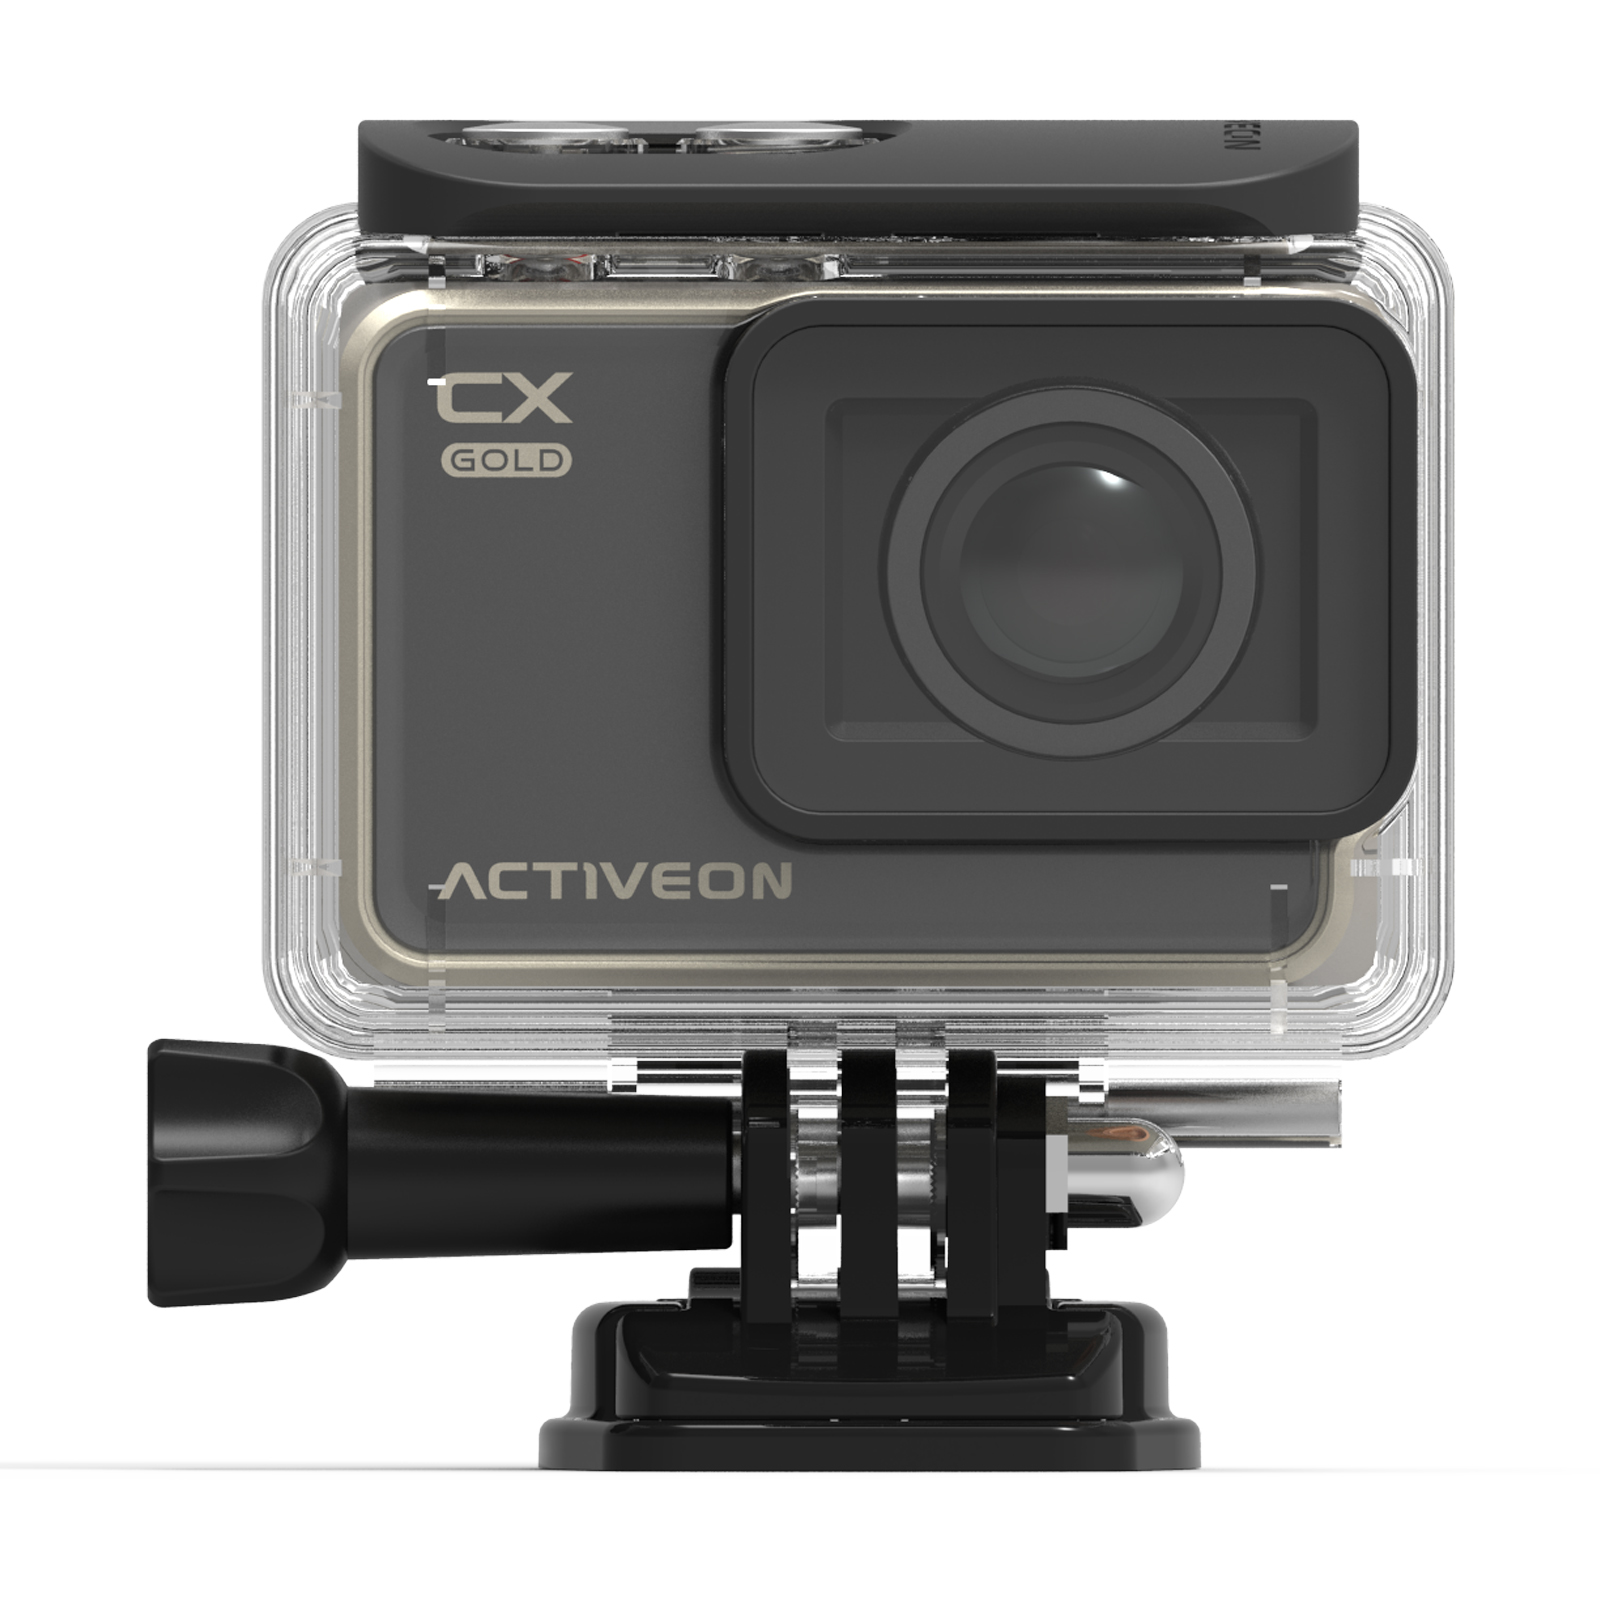 ACTIVEON 16-Megapixel Action Camera CX - Gold